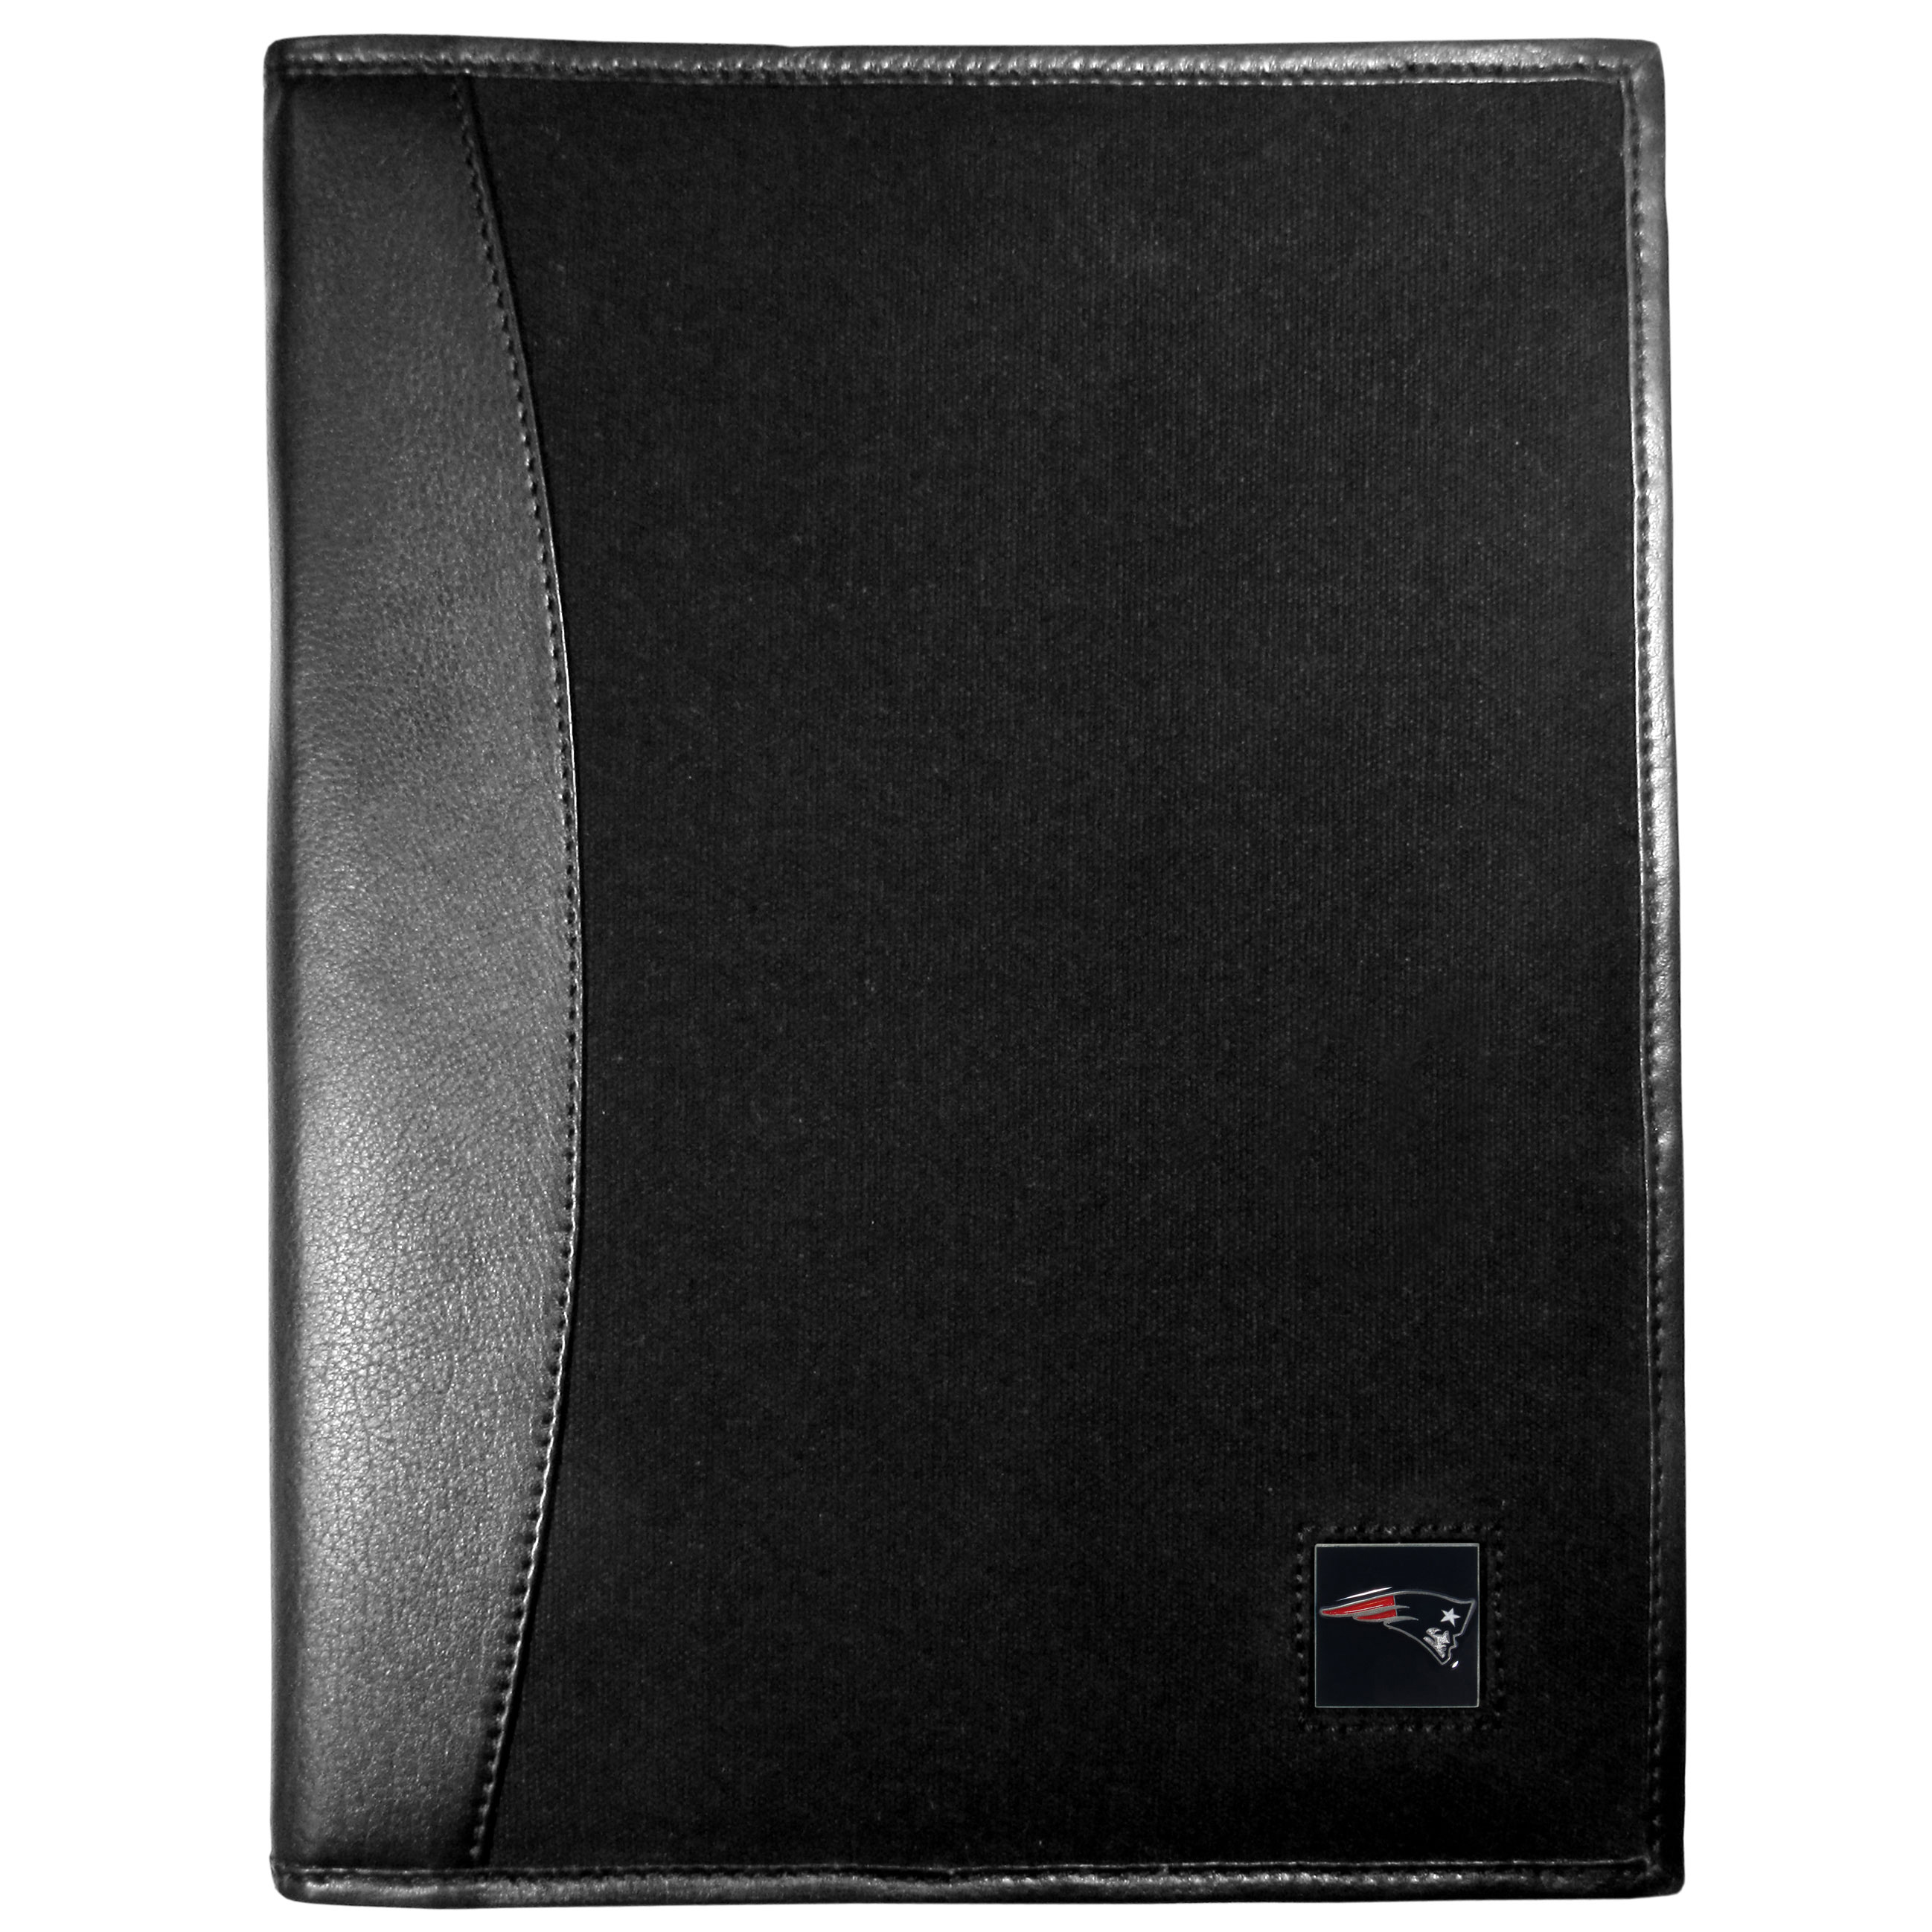 New England Patriots Leather and Canvas Padfolio - Our leather and canvas padfolio perfectly blends form and function. The attractive portfolio is bound in fine grain leather with an attractive canvas finish and the interior is a soft nylon. This high quality business accessory also features a fully cast metal New England Patriots emblem that is subtly set in the corner of the organizer. It is packed with features like 6 card slots for badges, business cards, hotel keys or credit cards and ID with a large pocket for loose papers and a writing tablet slot making it a must-have for the professional on the go.